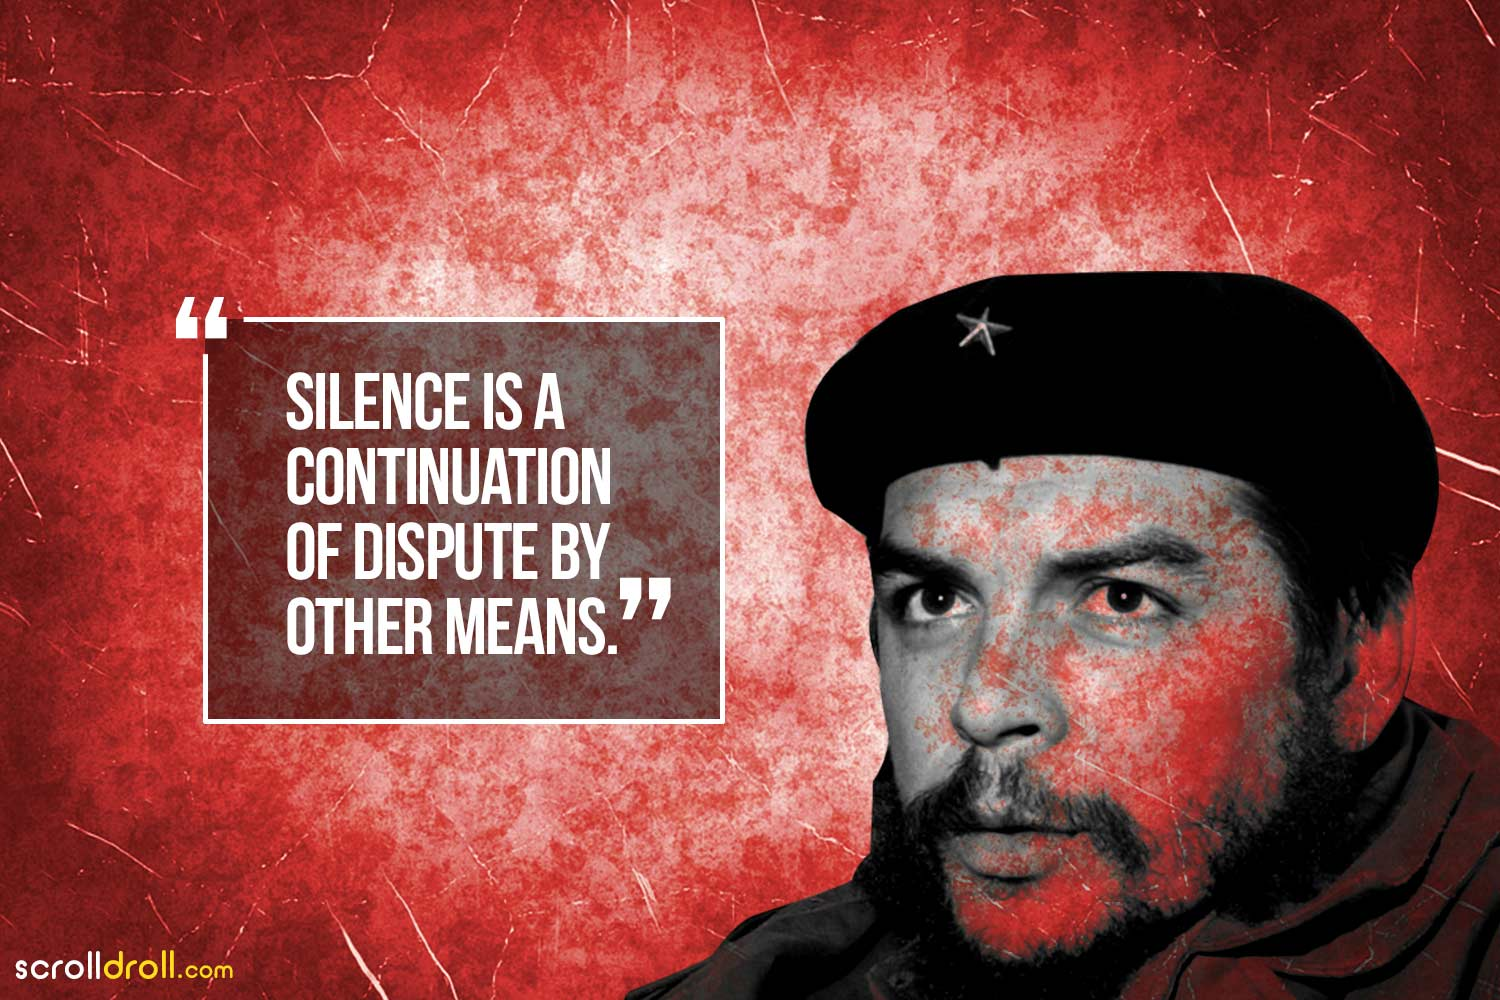 silence is a continuation of dispute by other means-Che Guevara